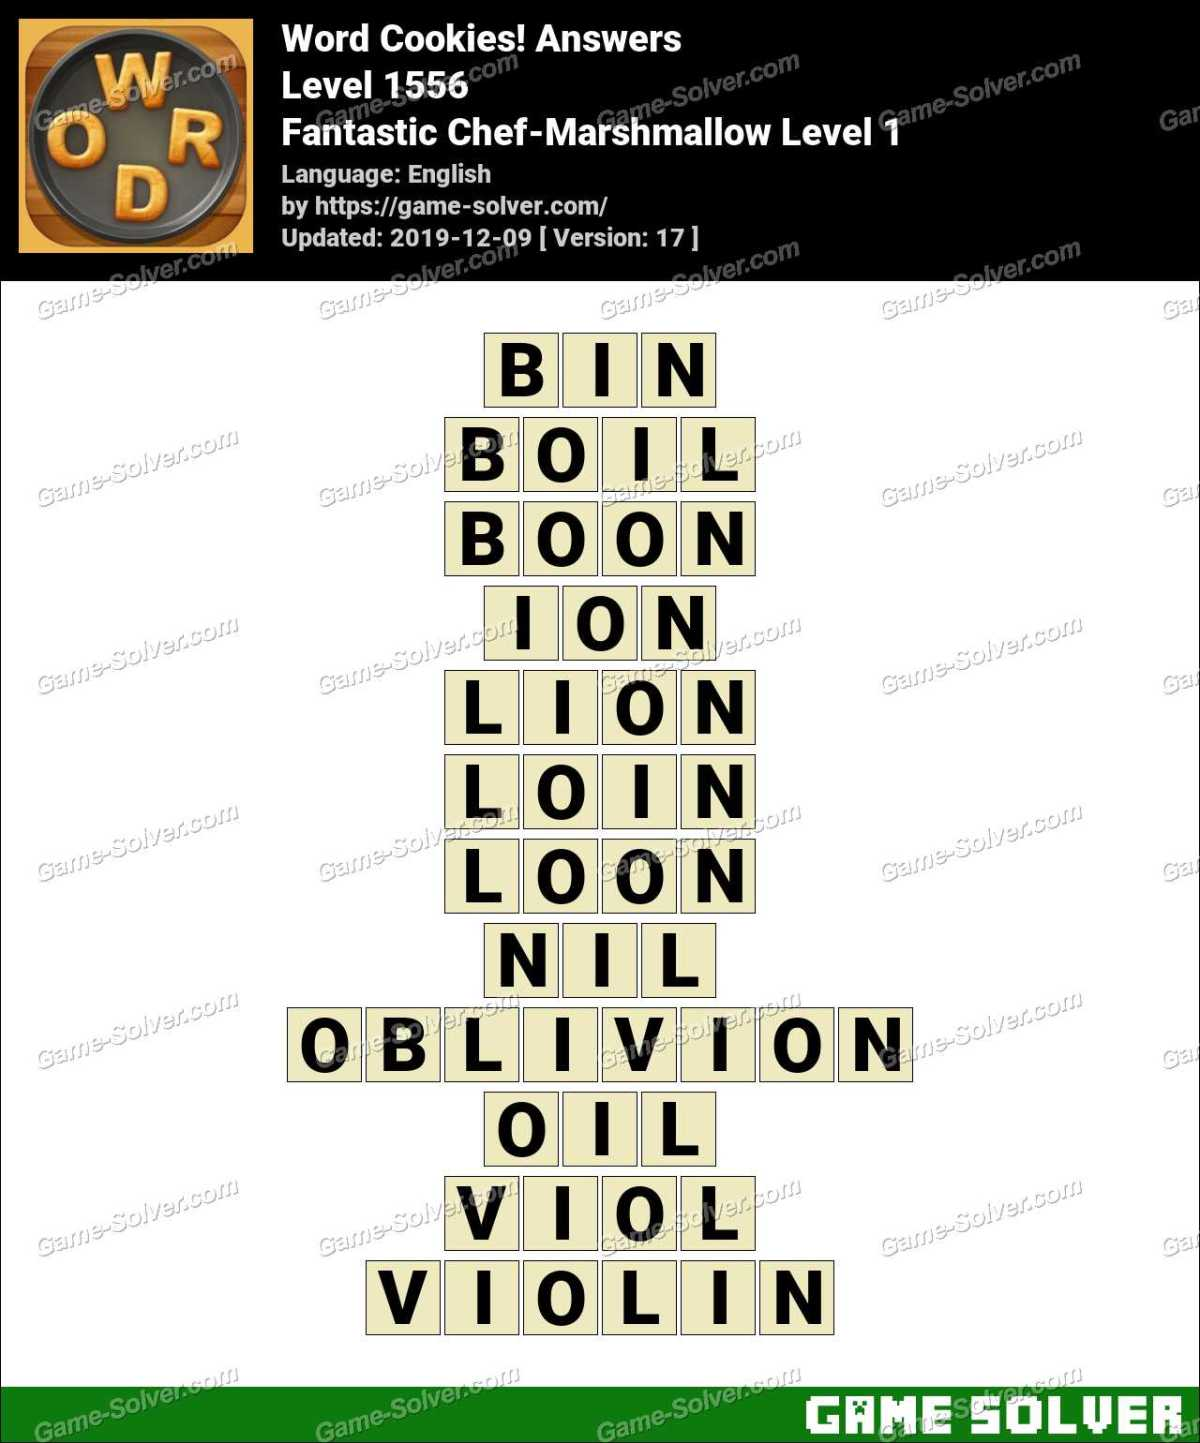 Word Cookies Fantastic Chef-Marshmallow Level 1 Answers